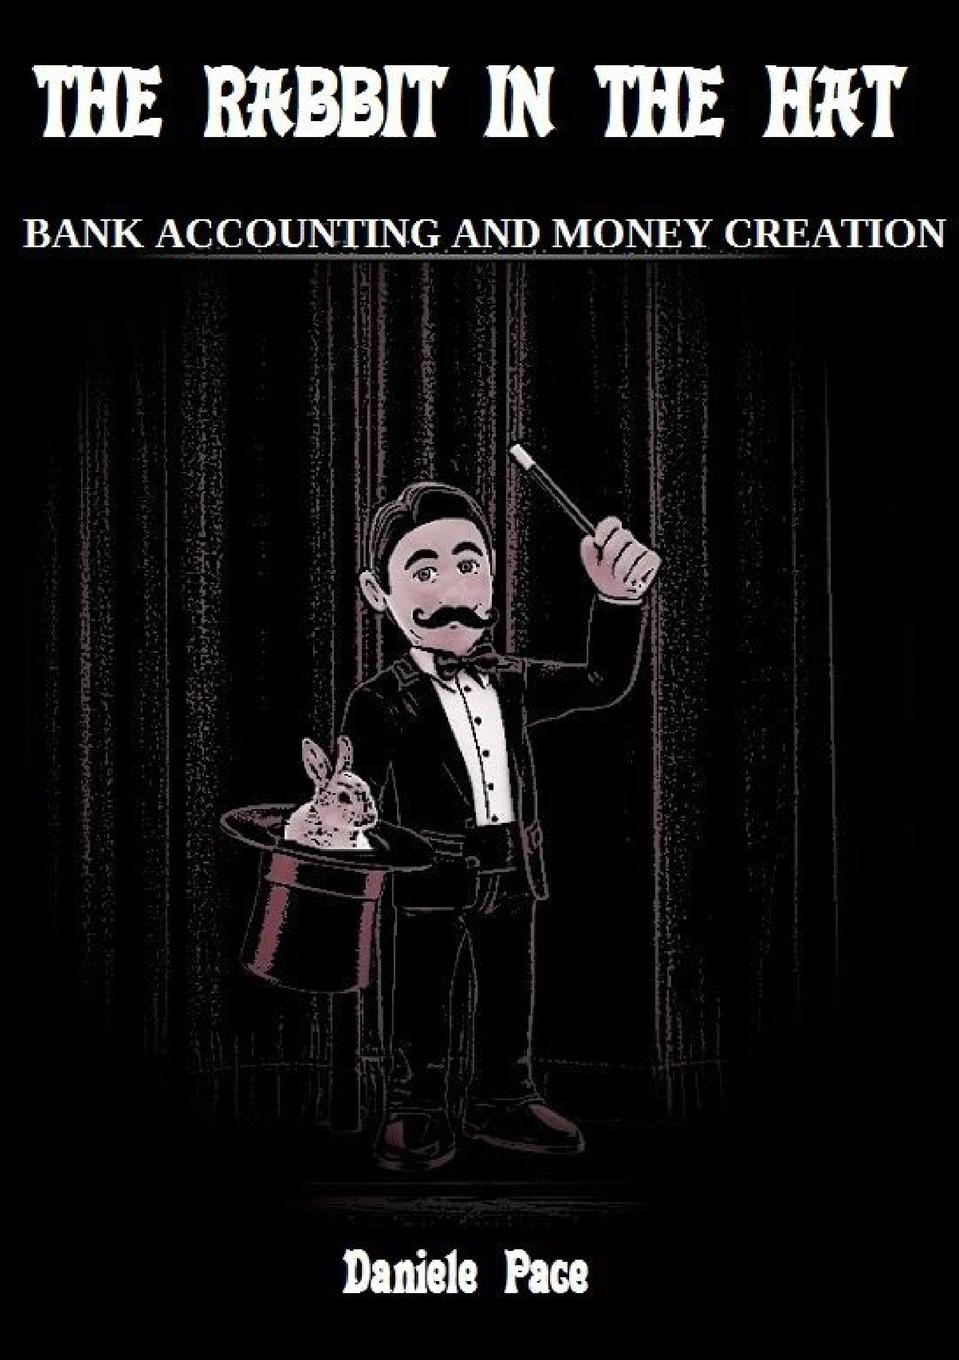 The rabbit in the hat The Rabbit in the hat - bank accounting and money creation wants...